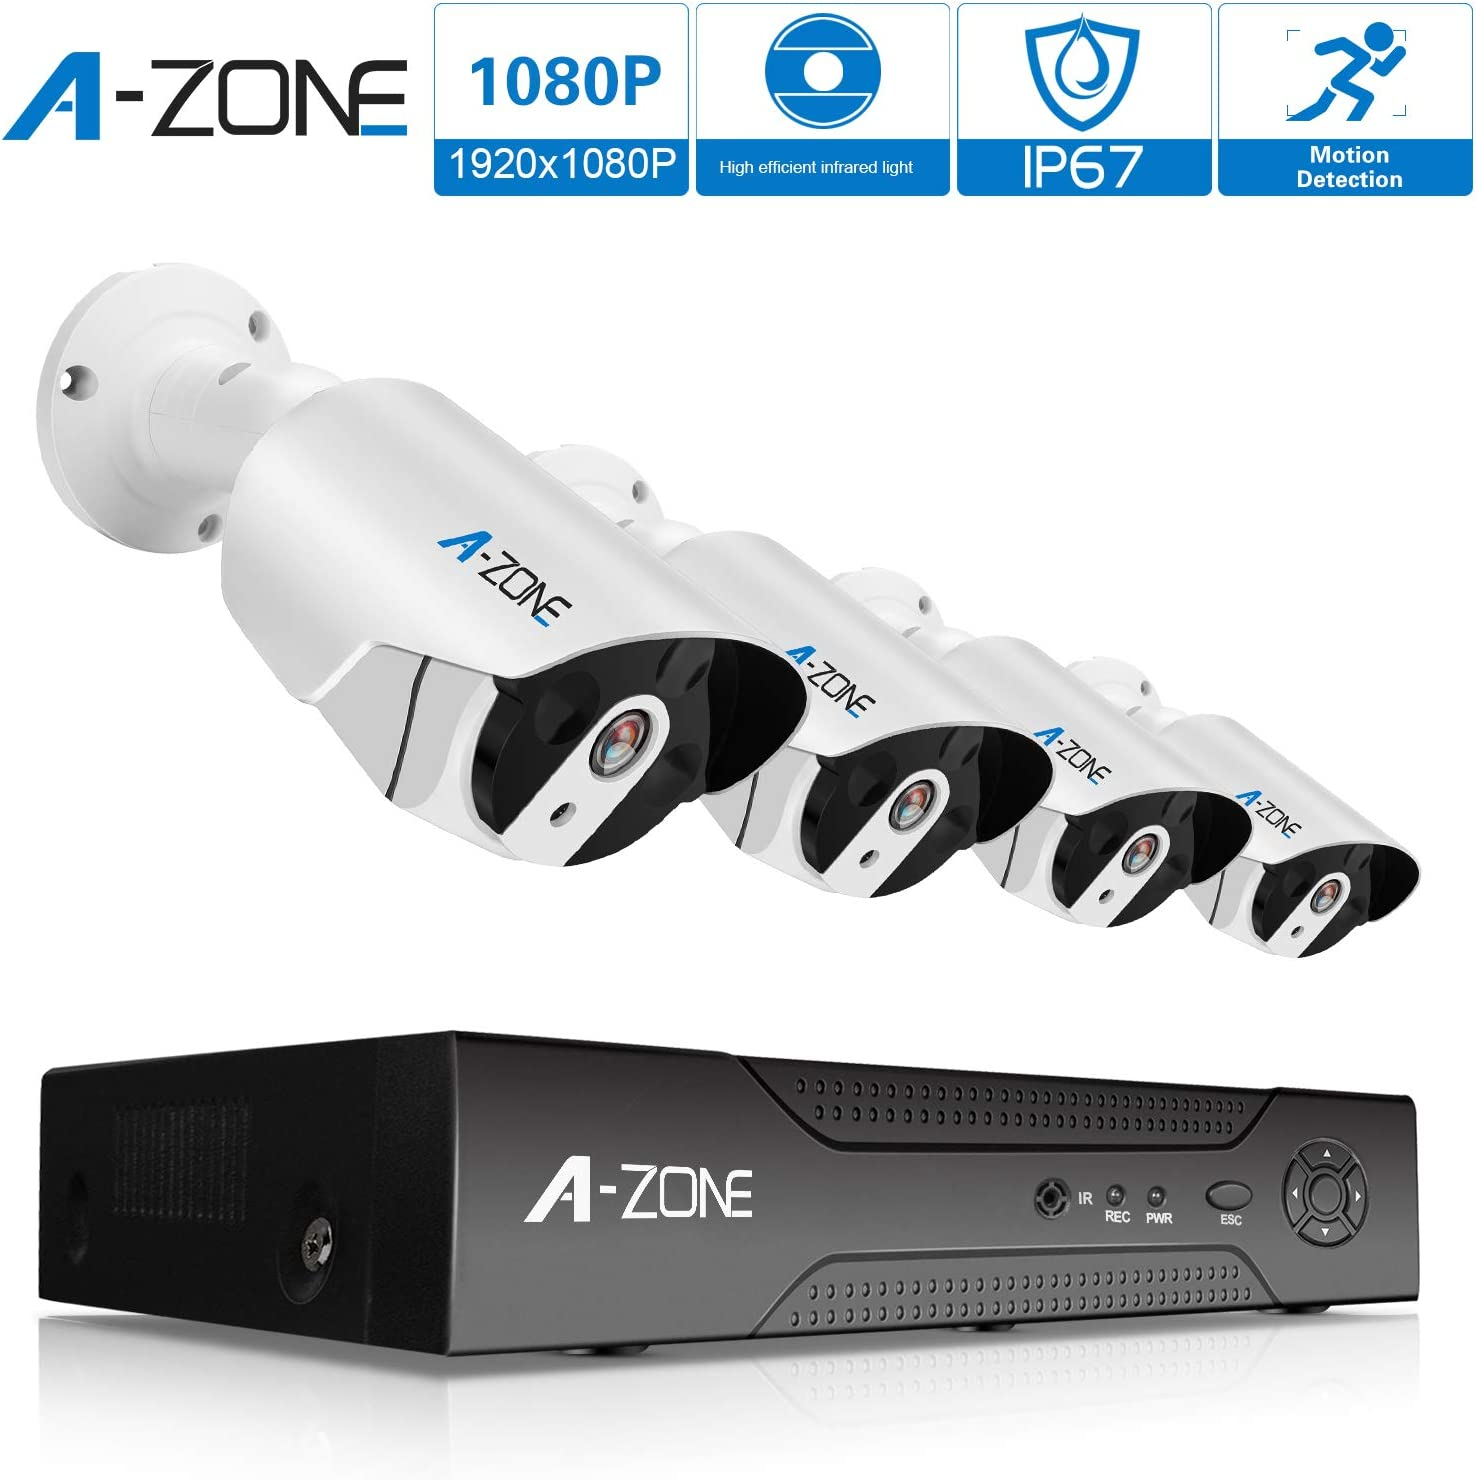 Security Camera System, A-ZONE Security 8ch 1080P NVR HD 1080P IP PoE Security Camera System with 4 Outdoor Indoor 3.6mm Fixed Lens 2MP 1080P Cameras, QR Code Easy Setup, Free Remote View-1TB HDD